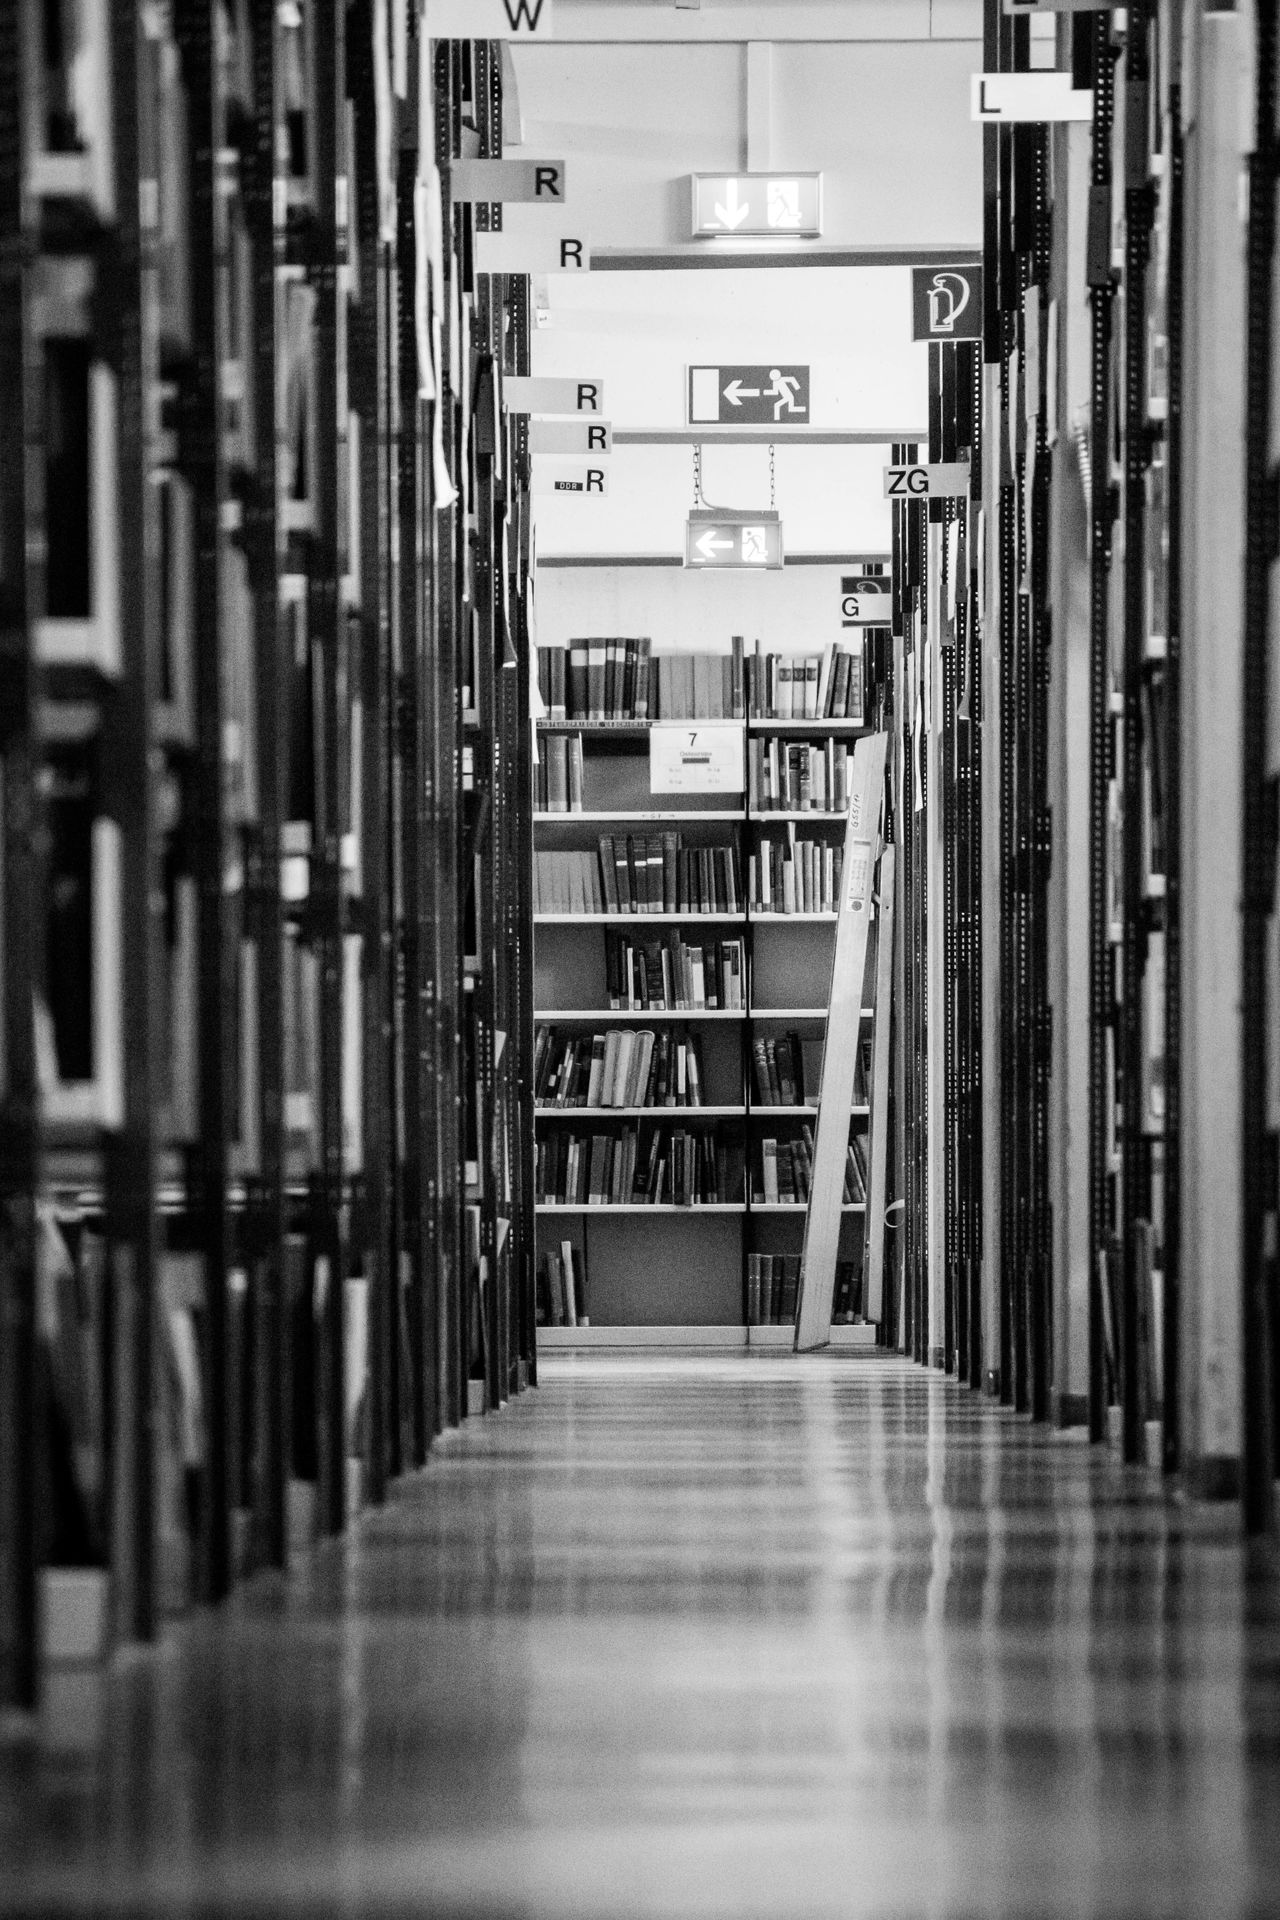 Gray day between books In A Row Indoors  No People Book Shelves Bookshelves Bookstore Library Bookshelf Education Shelf University Research Book Architecture Archives Study Learn Studieren Student Studying Freie Universität Berlin Open Stack